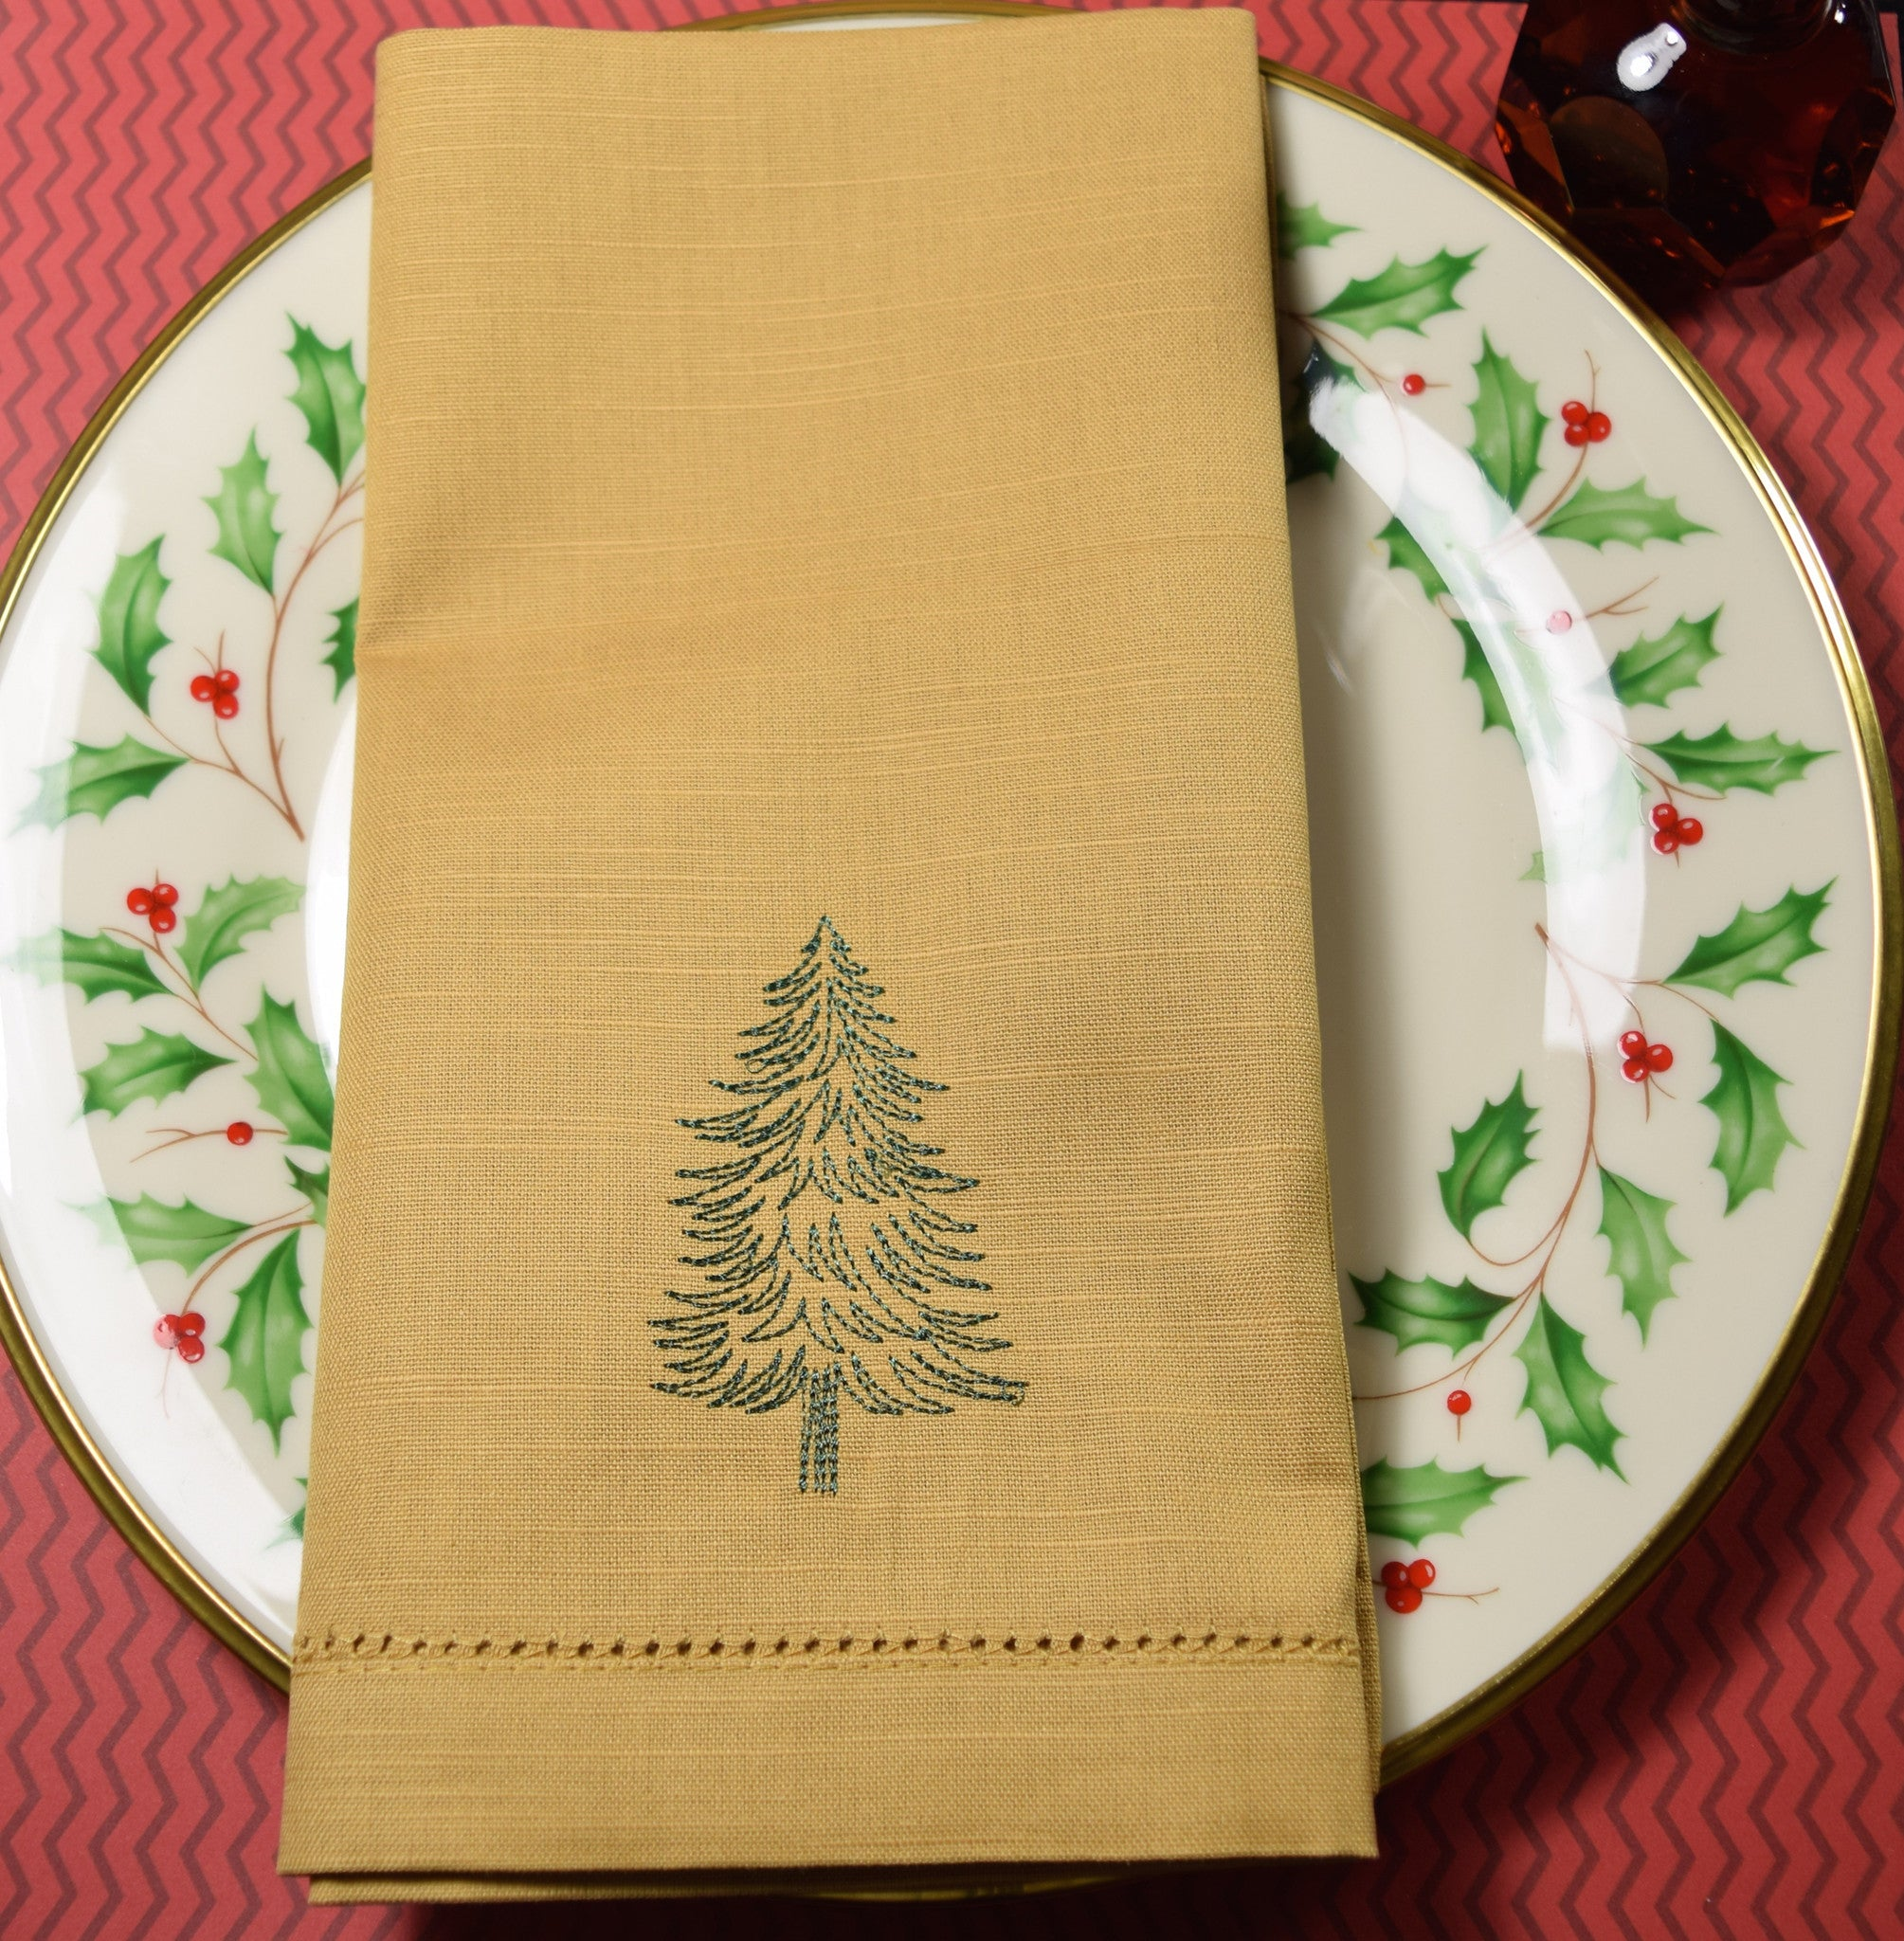 christmas tree cloth dinner antique gold napkins set of 4 napkins - Christmas Napkins Cloth